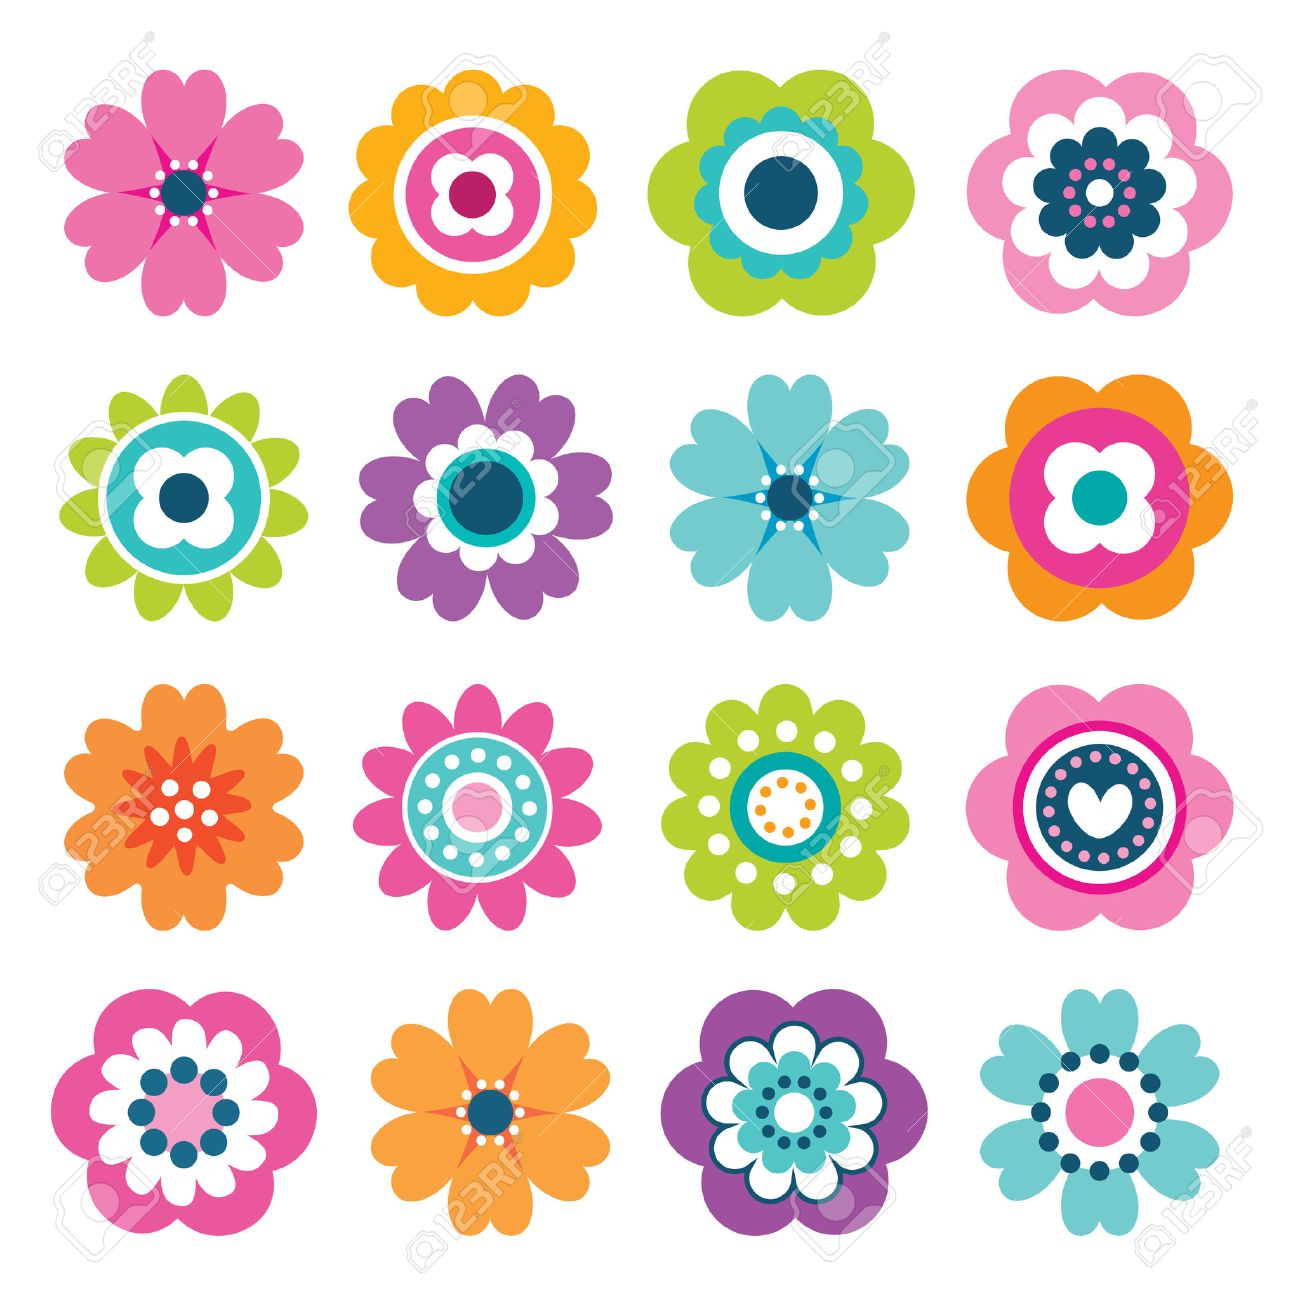 Flower cartoon stock photos royalty free flower cartoon images set of flat flower icons in silhouette isolated on white cute retro illustrations in bright izmirmasajfo Gallery